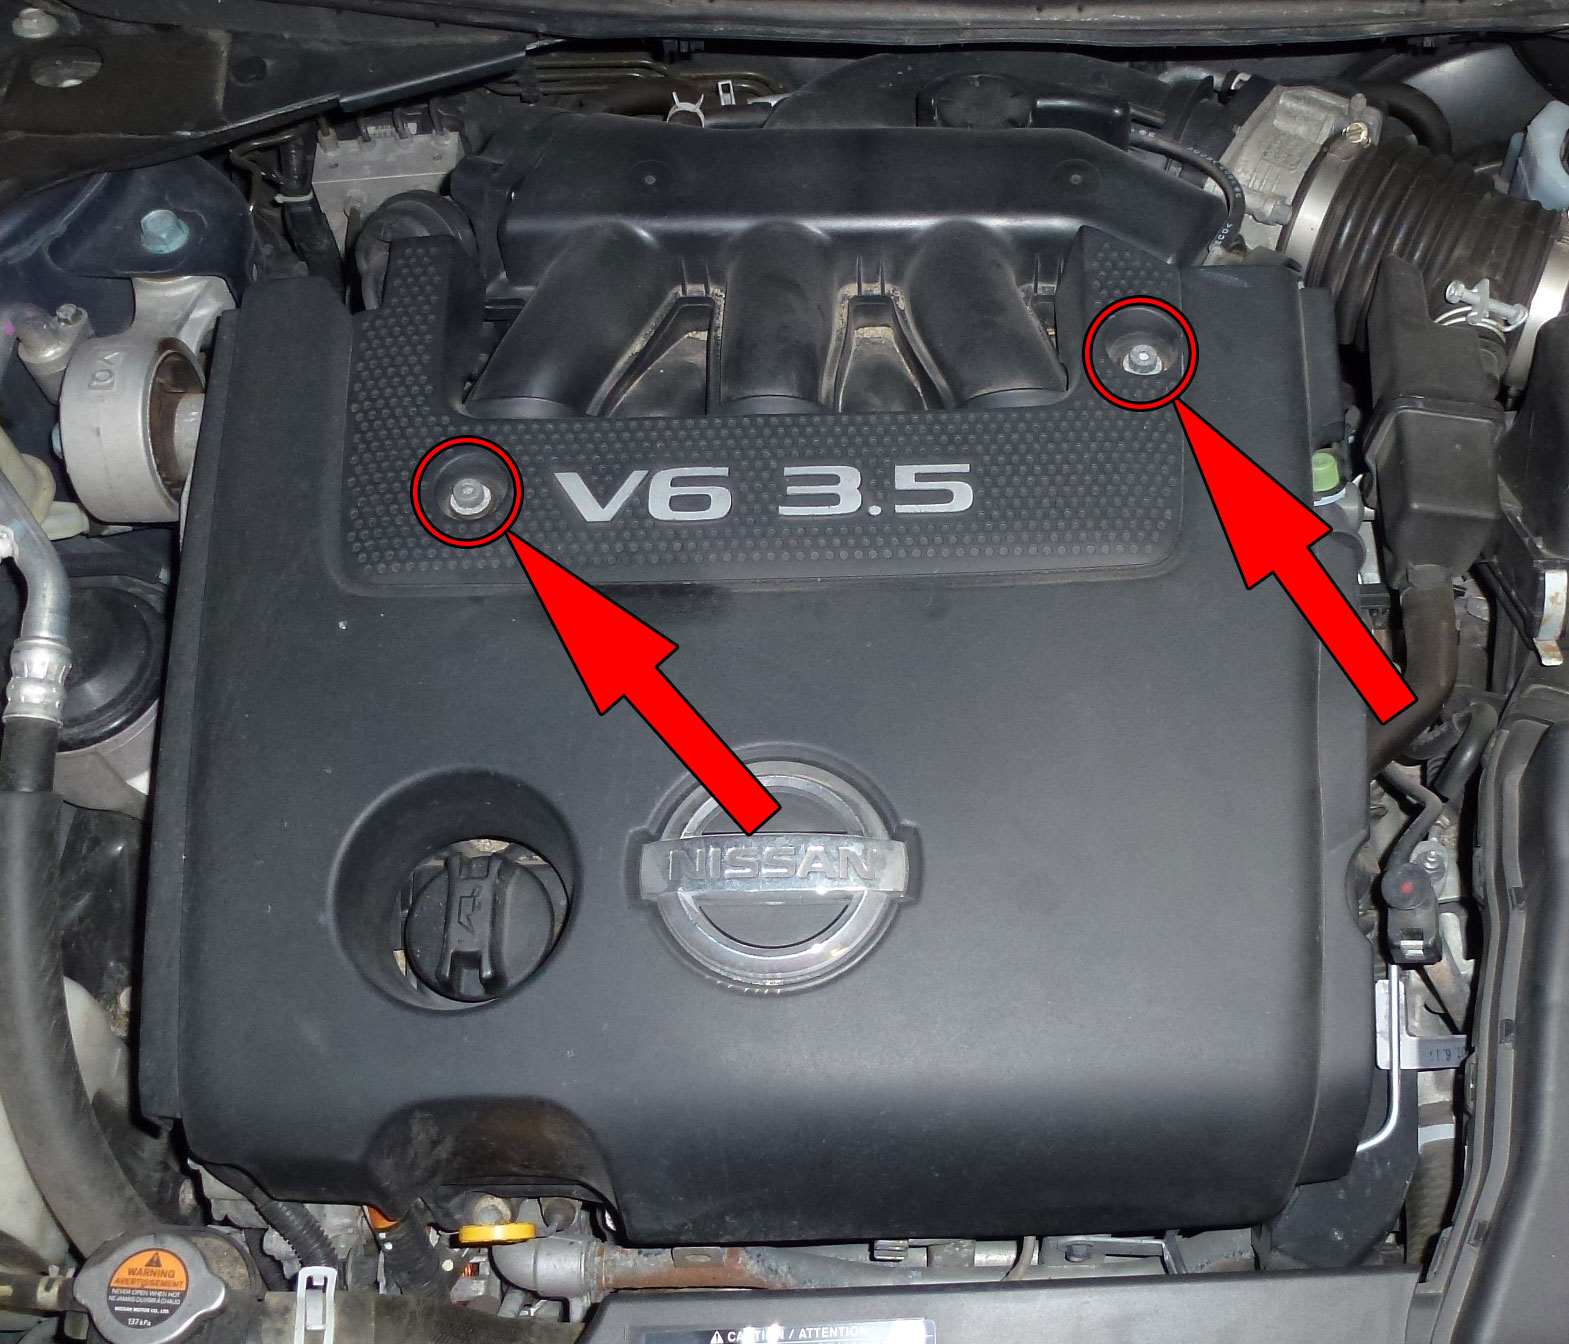 Nissan Altima: Starting the engine